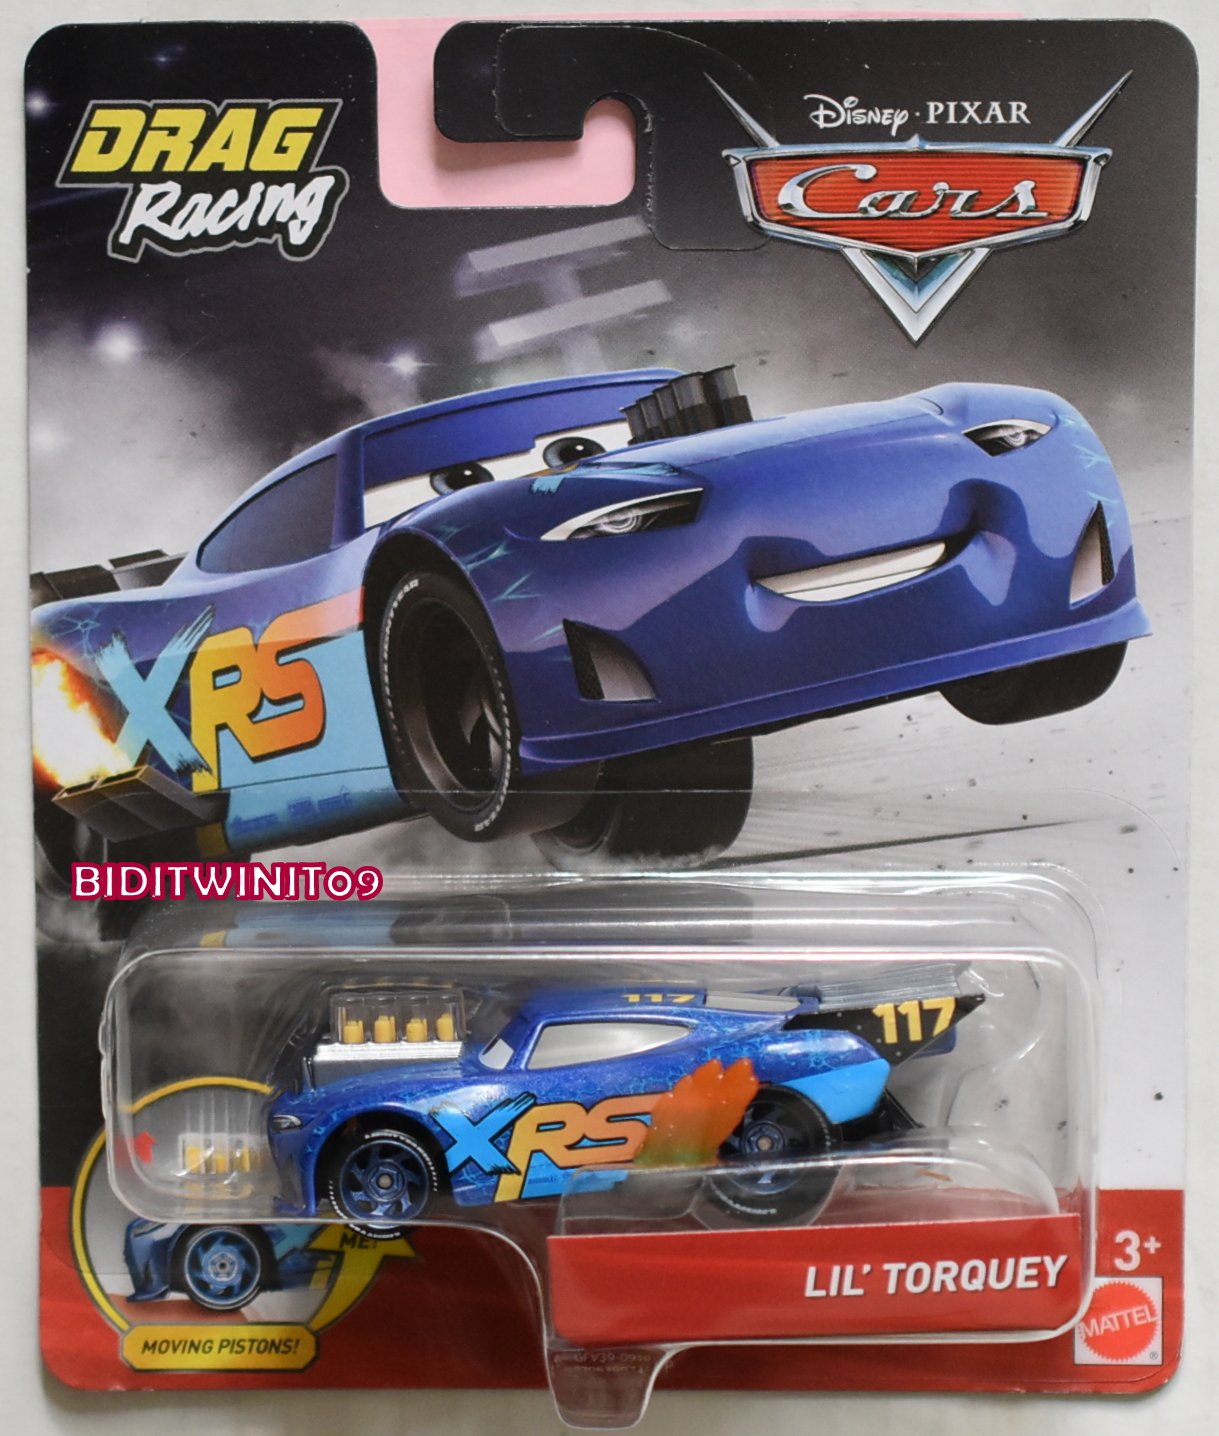 DISNEY PIXAR CARS DRAG RACING LIL' TORQUEY XRS